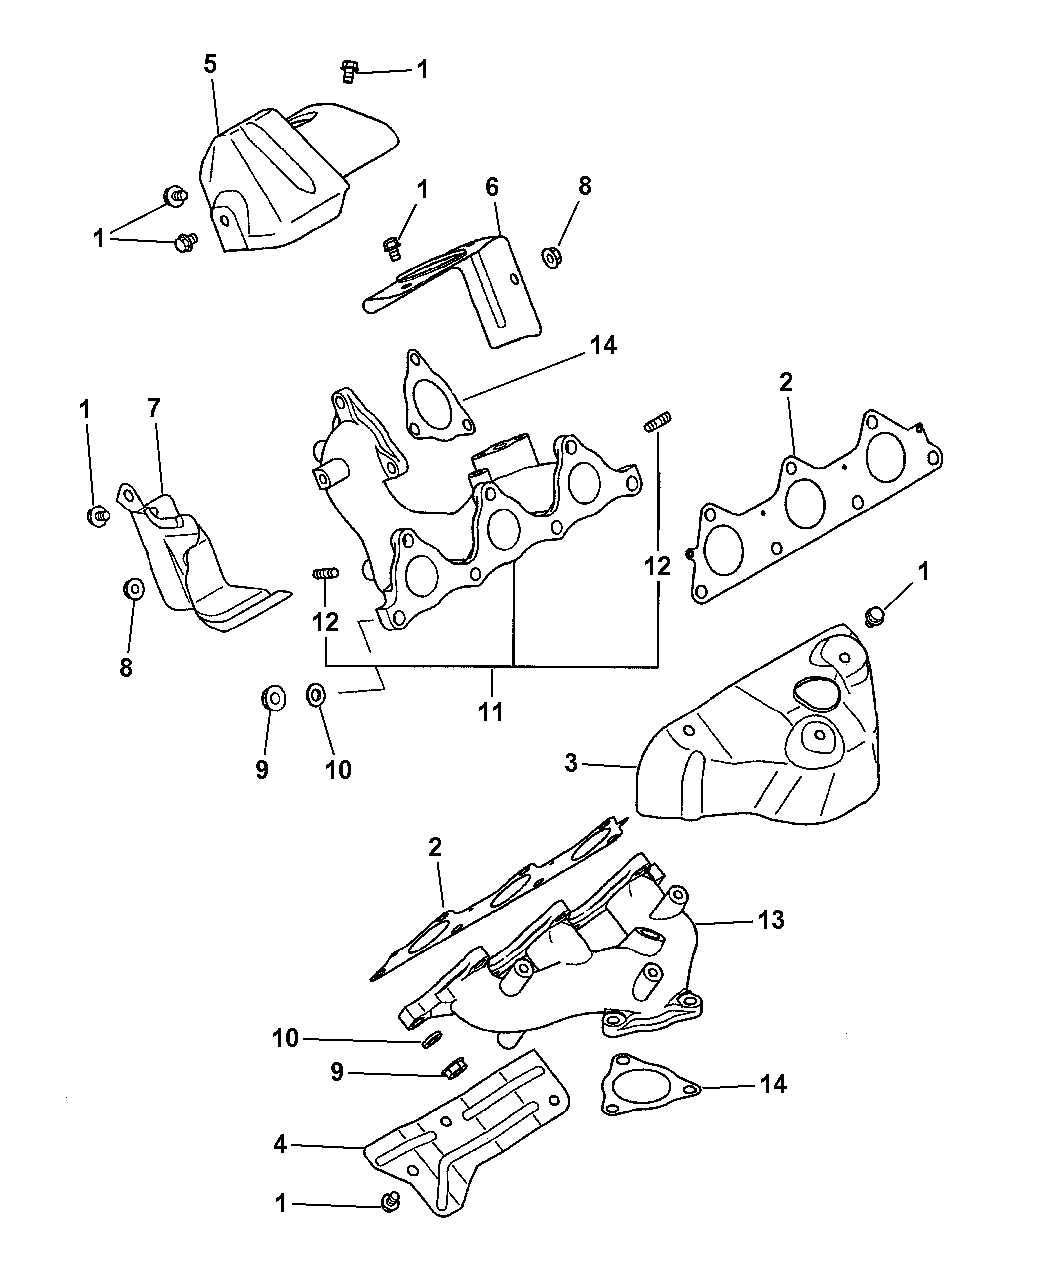 1999 Dodge Avenger Manifolds Intake Exhaust Engine Diagram Thumbnail 3